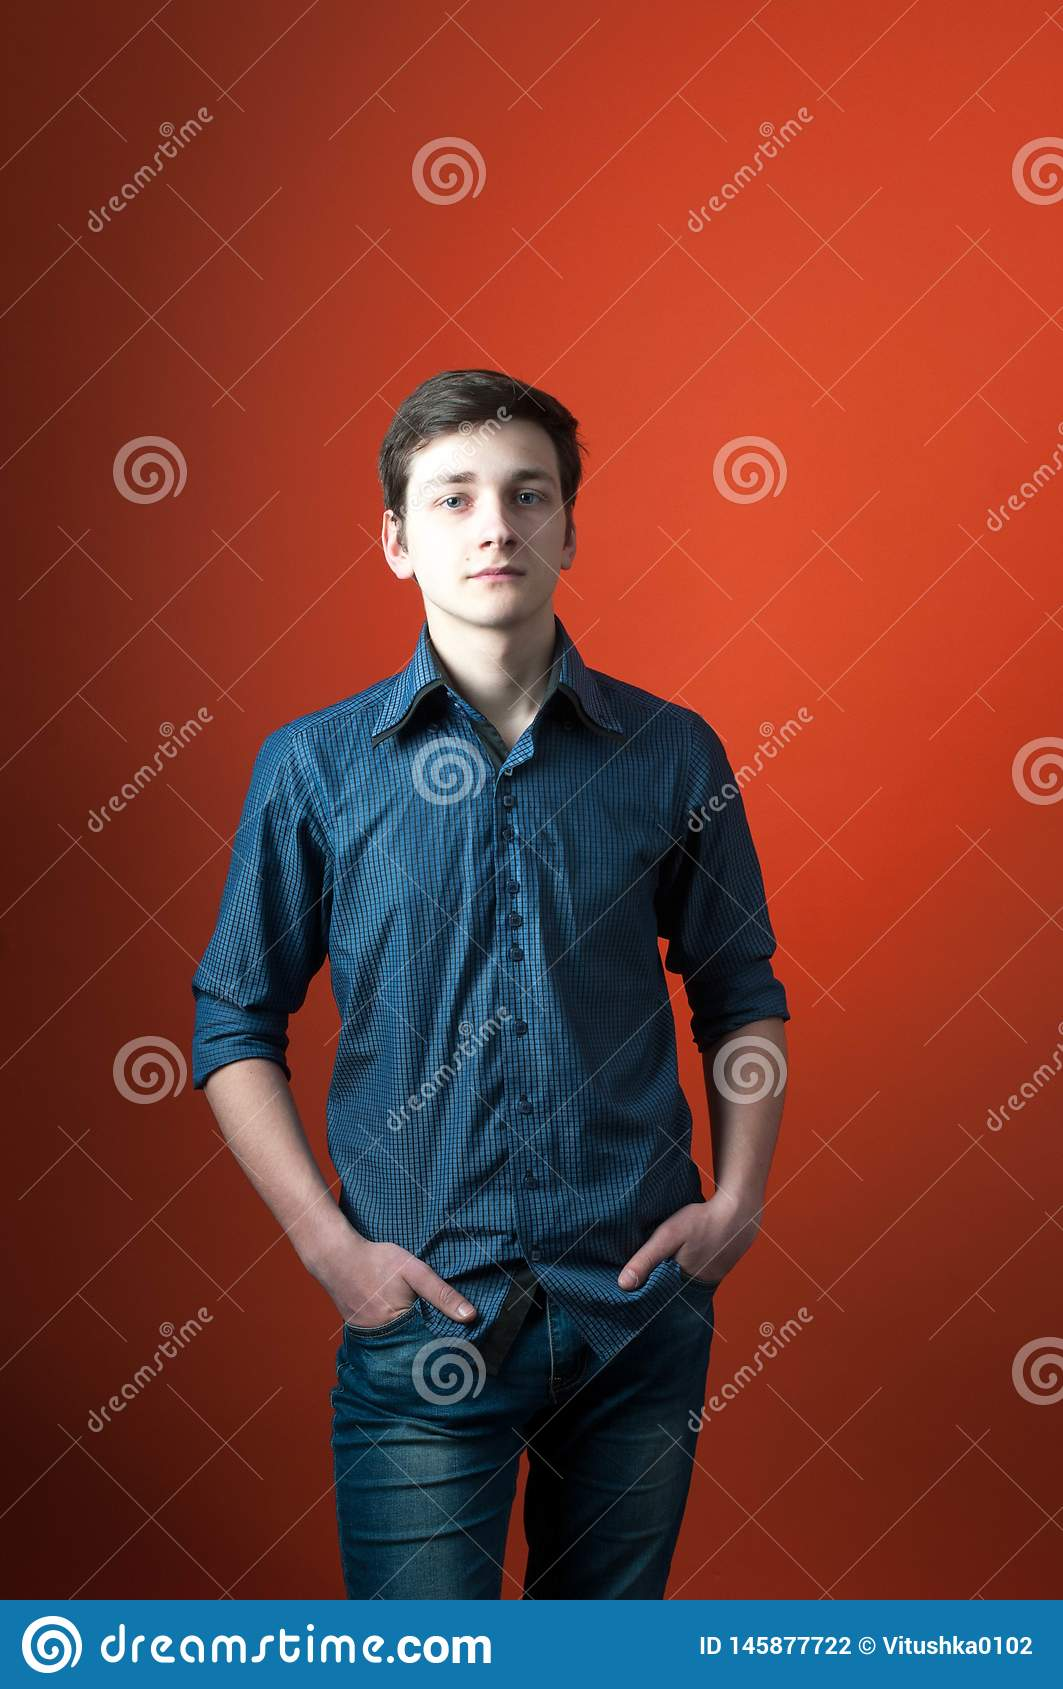 Barista in blue shirt and jeans standing with hands in pockets and looking at camera on orange background